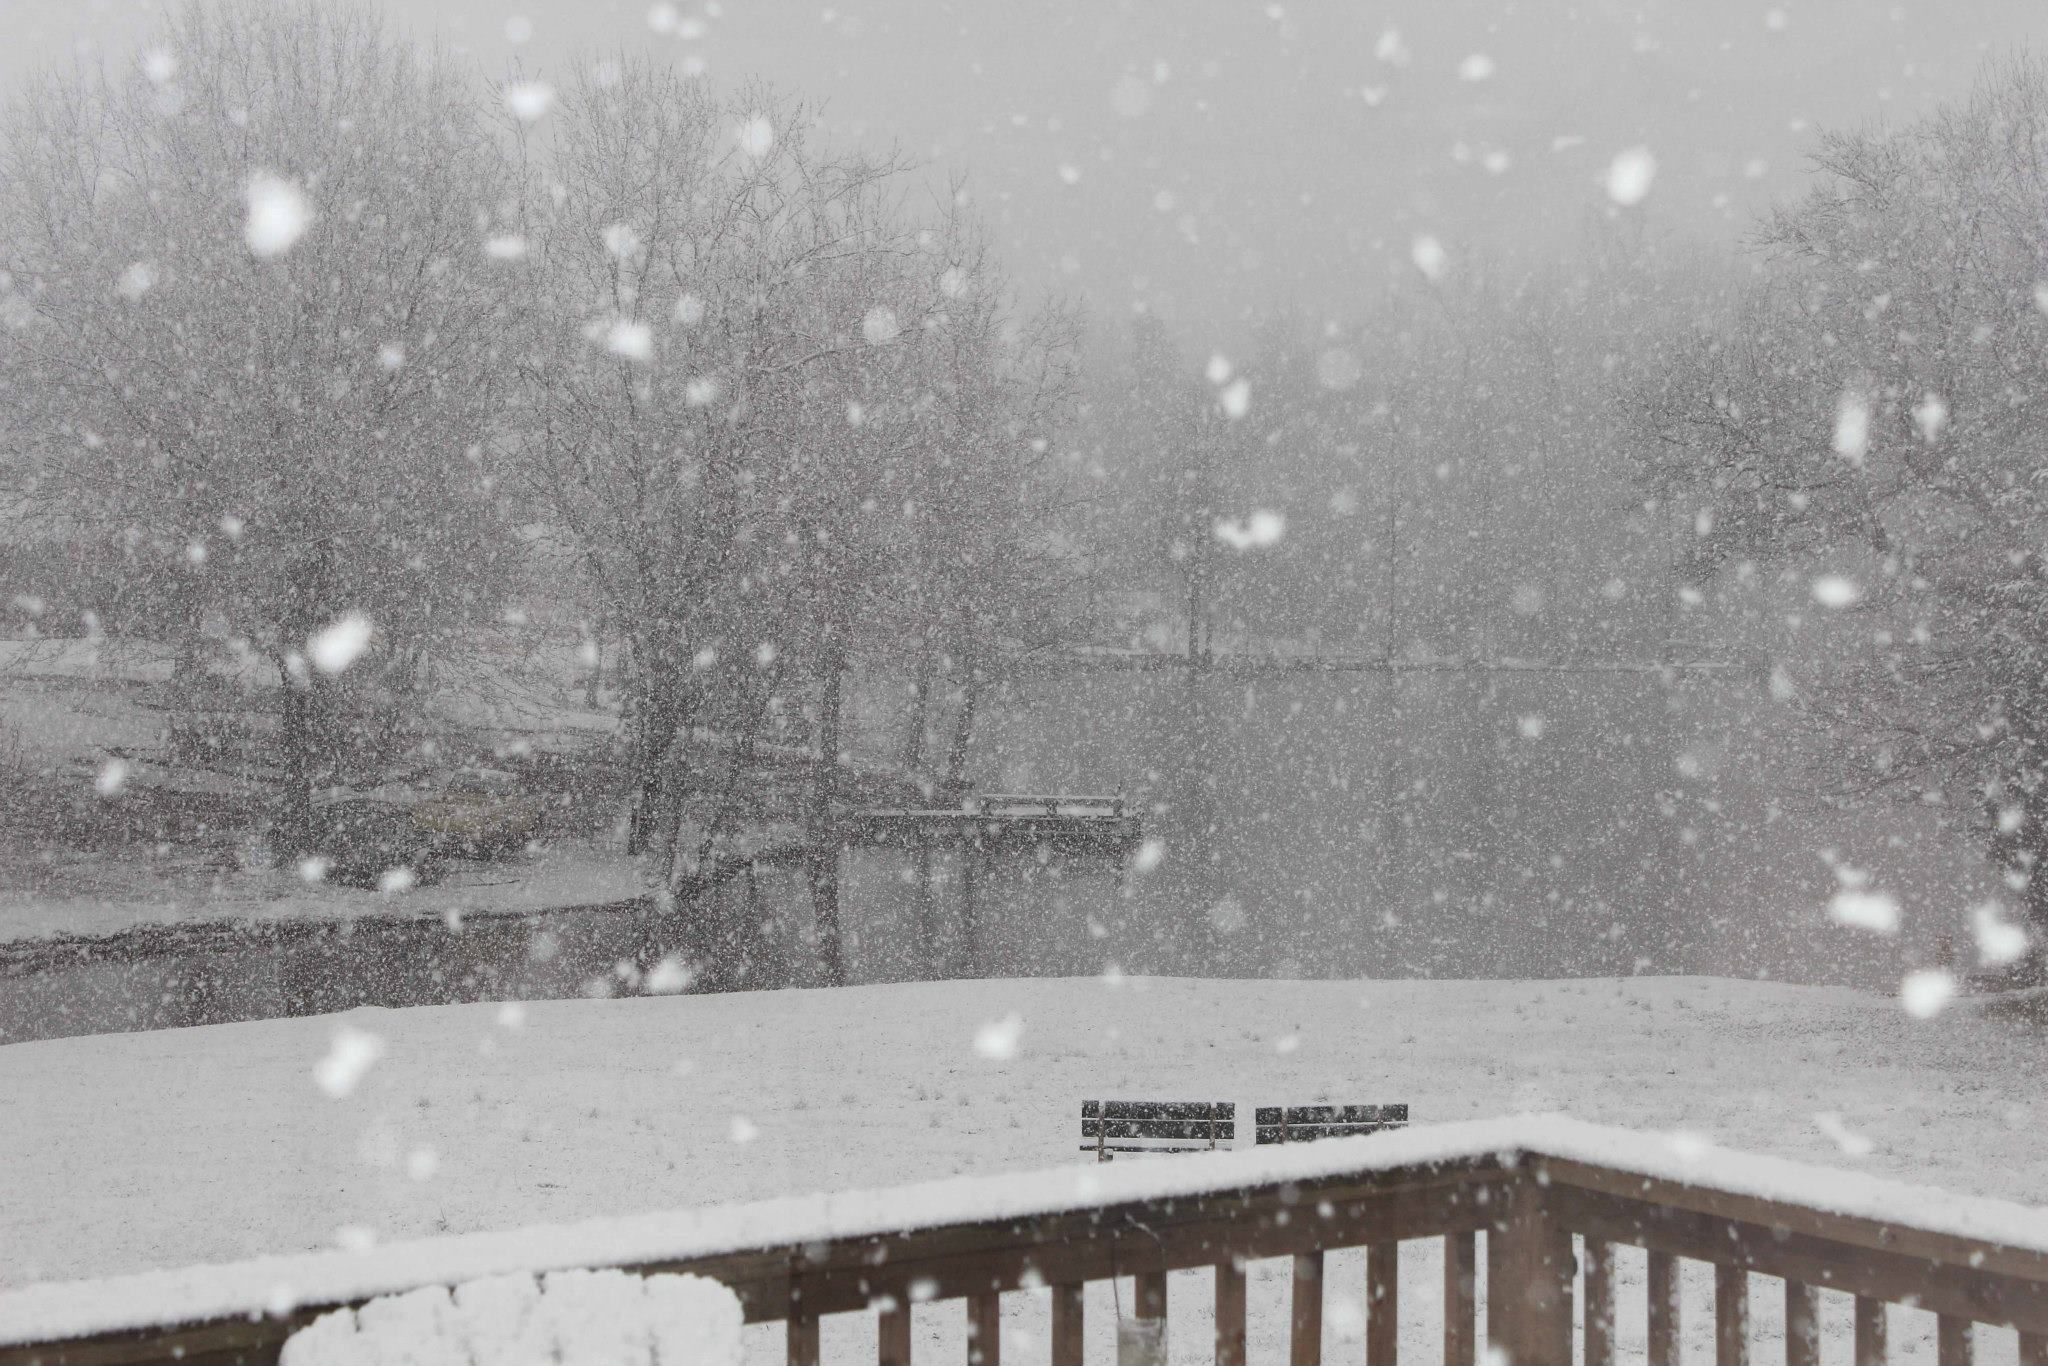 This was taken  before we rebuilt our deck. We had a lovely snow that year.  In the distance you can see our little lake. Living is SC we rarely get snow.  It eluded us this year 2014-2015